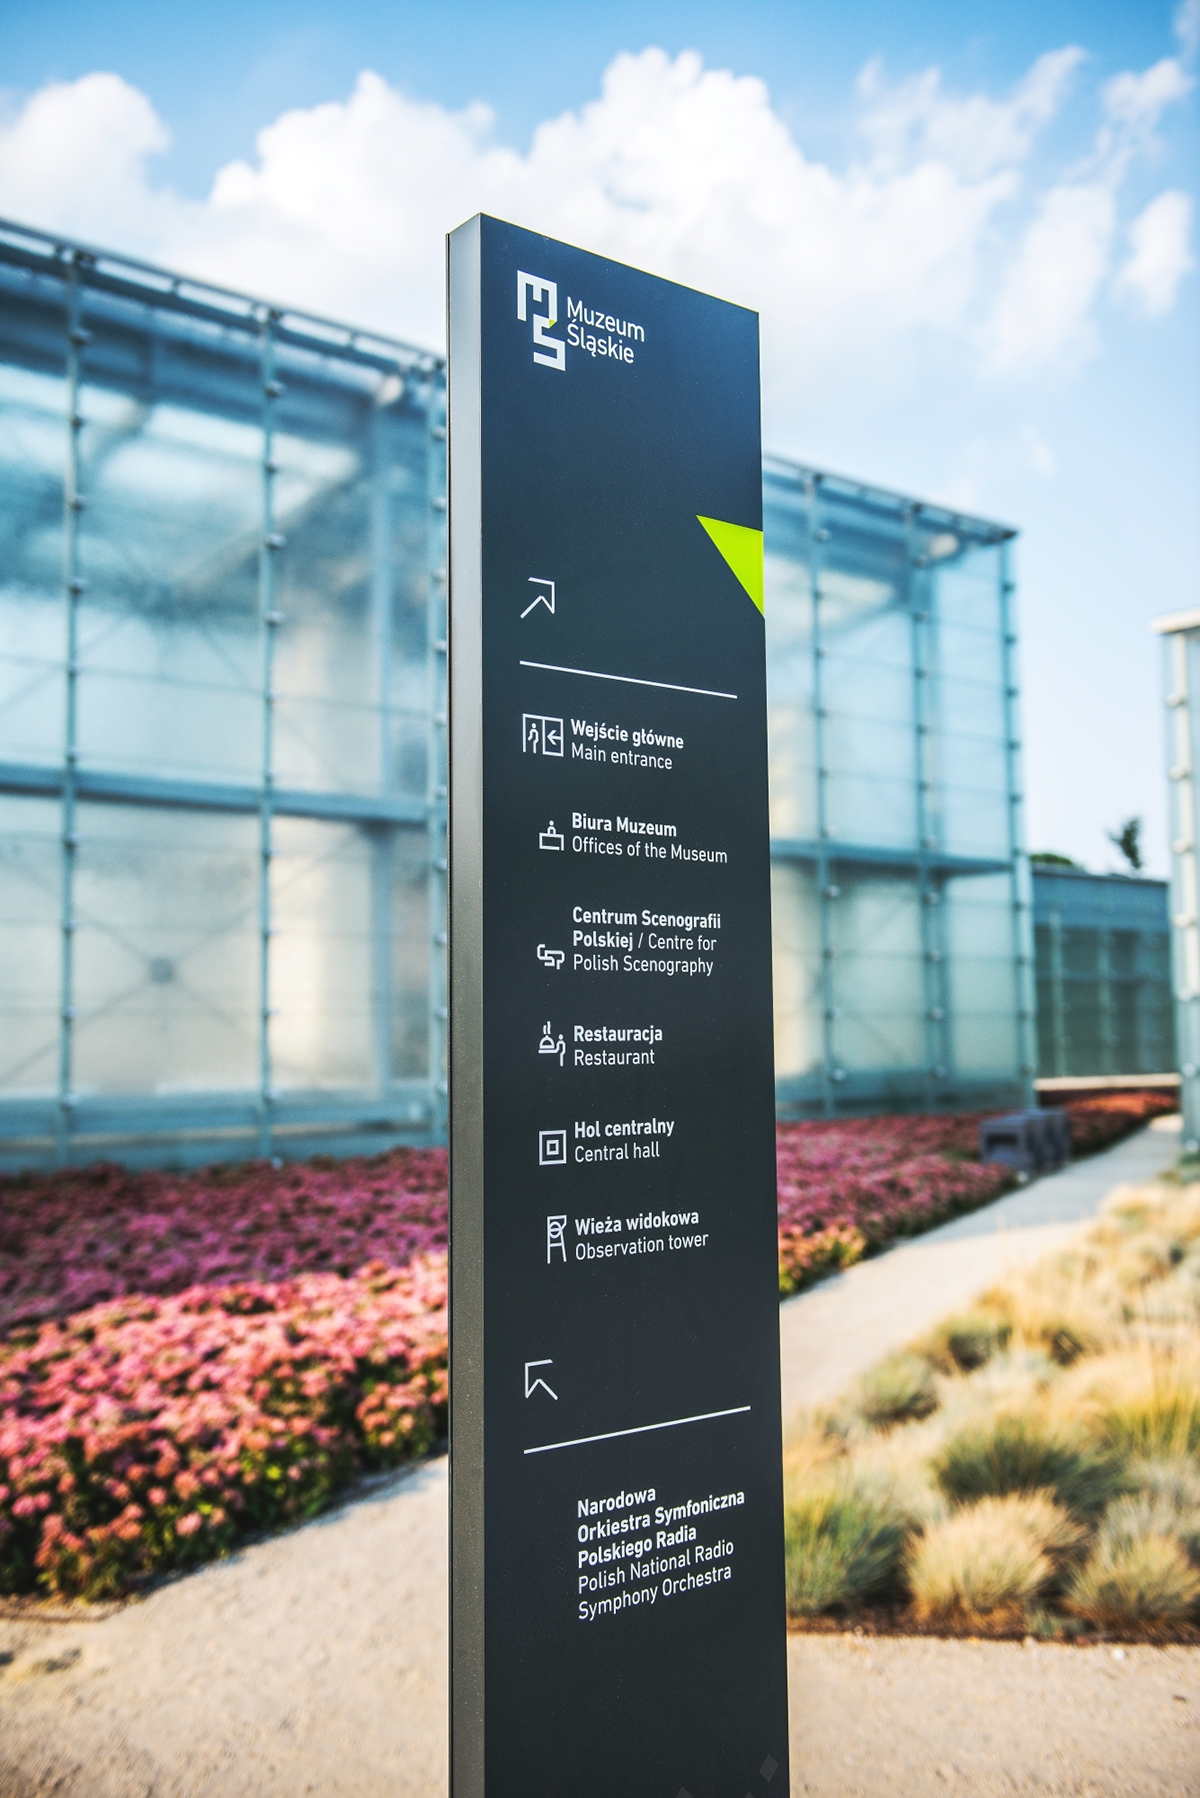 wayfinding environmental Signage signs cultural museum system sinalética public space